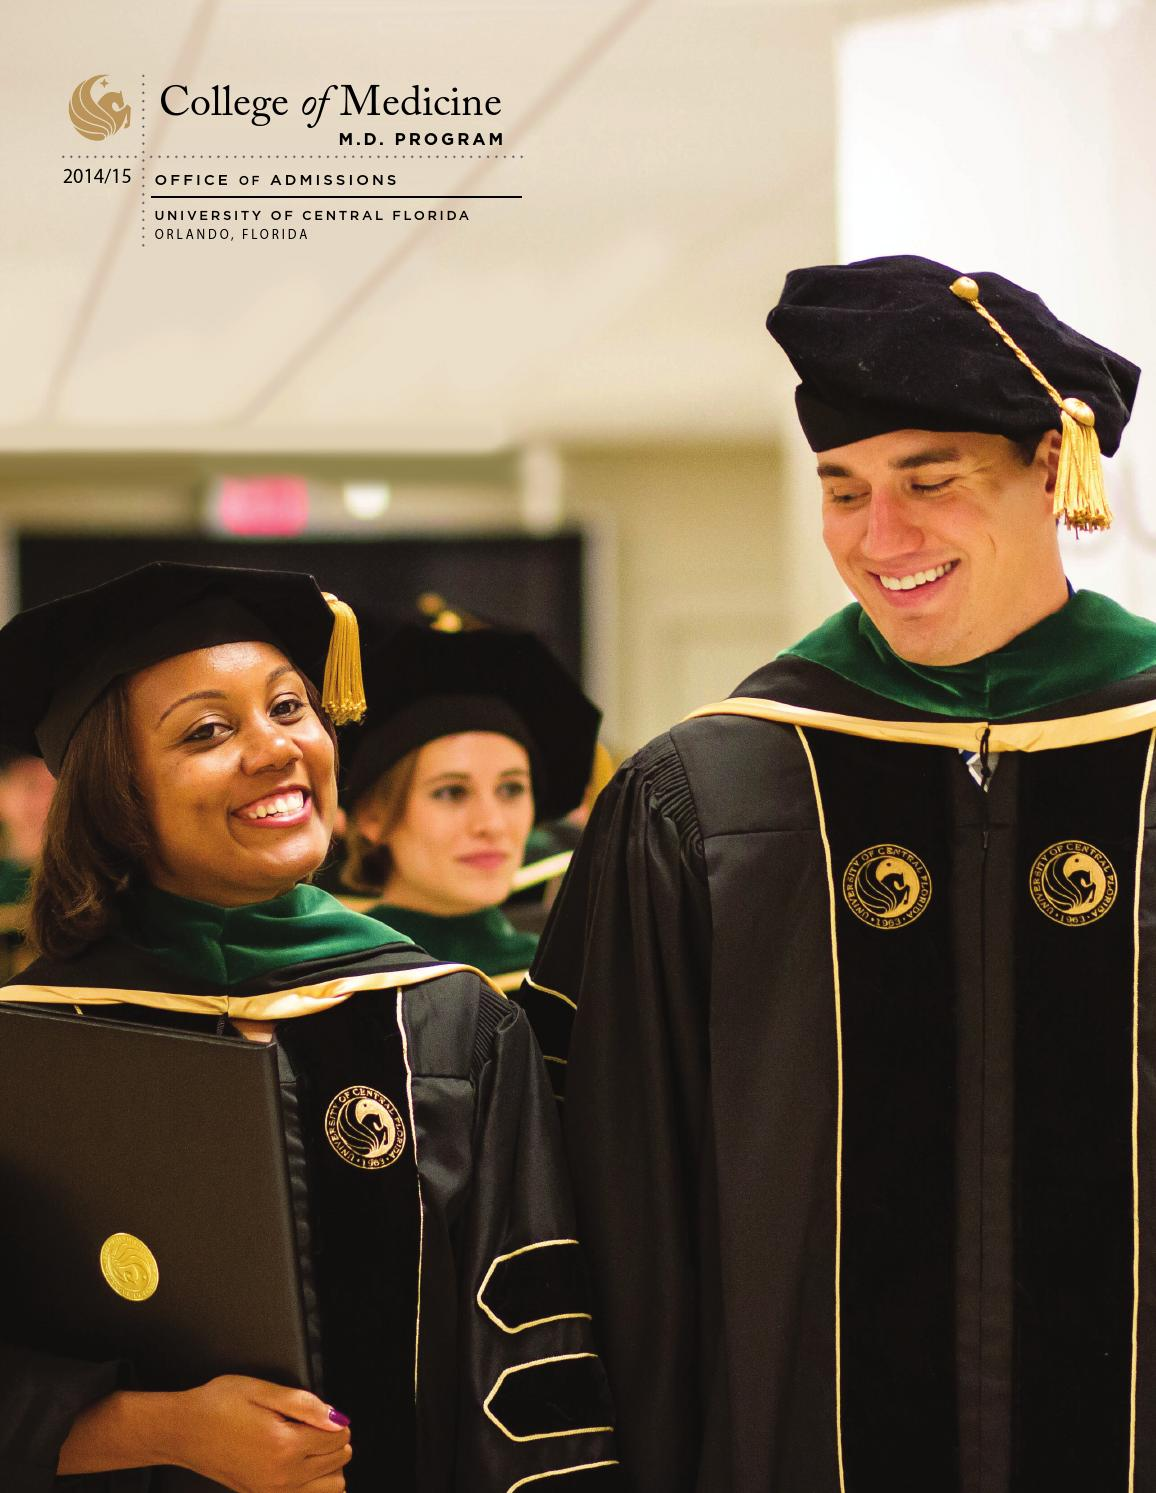 college essay prompts 2012 ucf The honors college will help me to think about things differently, discuss topics more in depth, and ask questions i had never thought to ask before i want to reach my full potential and be challenged in the honors college.